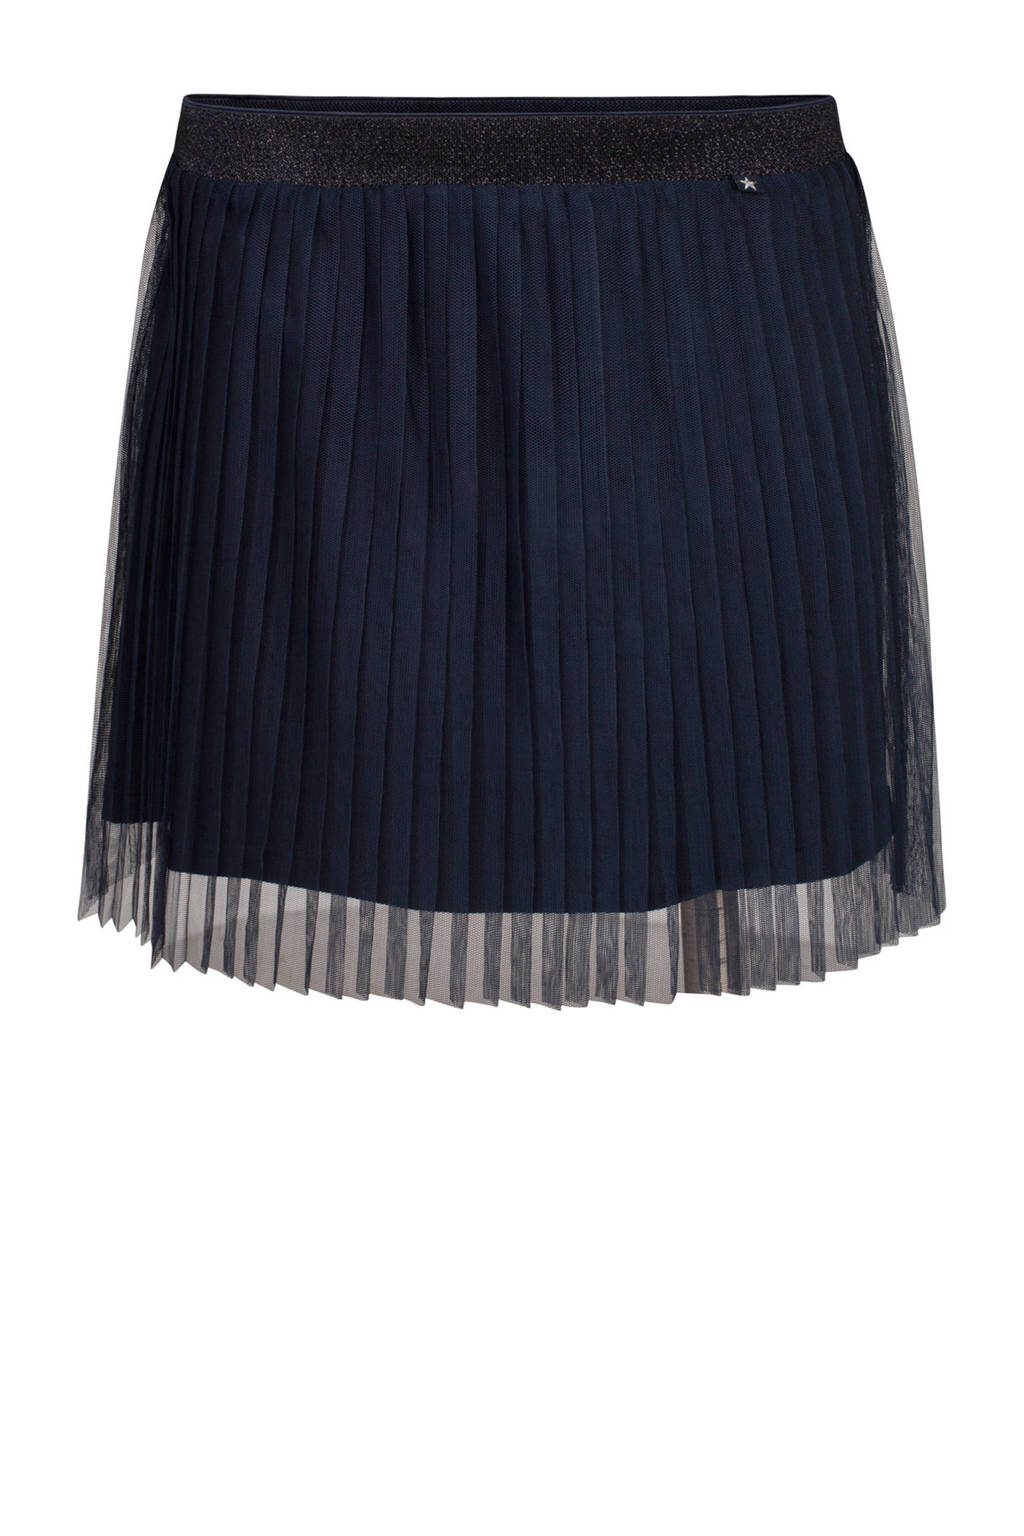 WE Fashion plissé tule rok donkerblauw, Donkerblauw